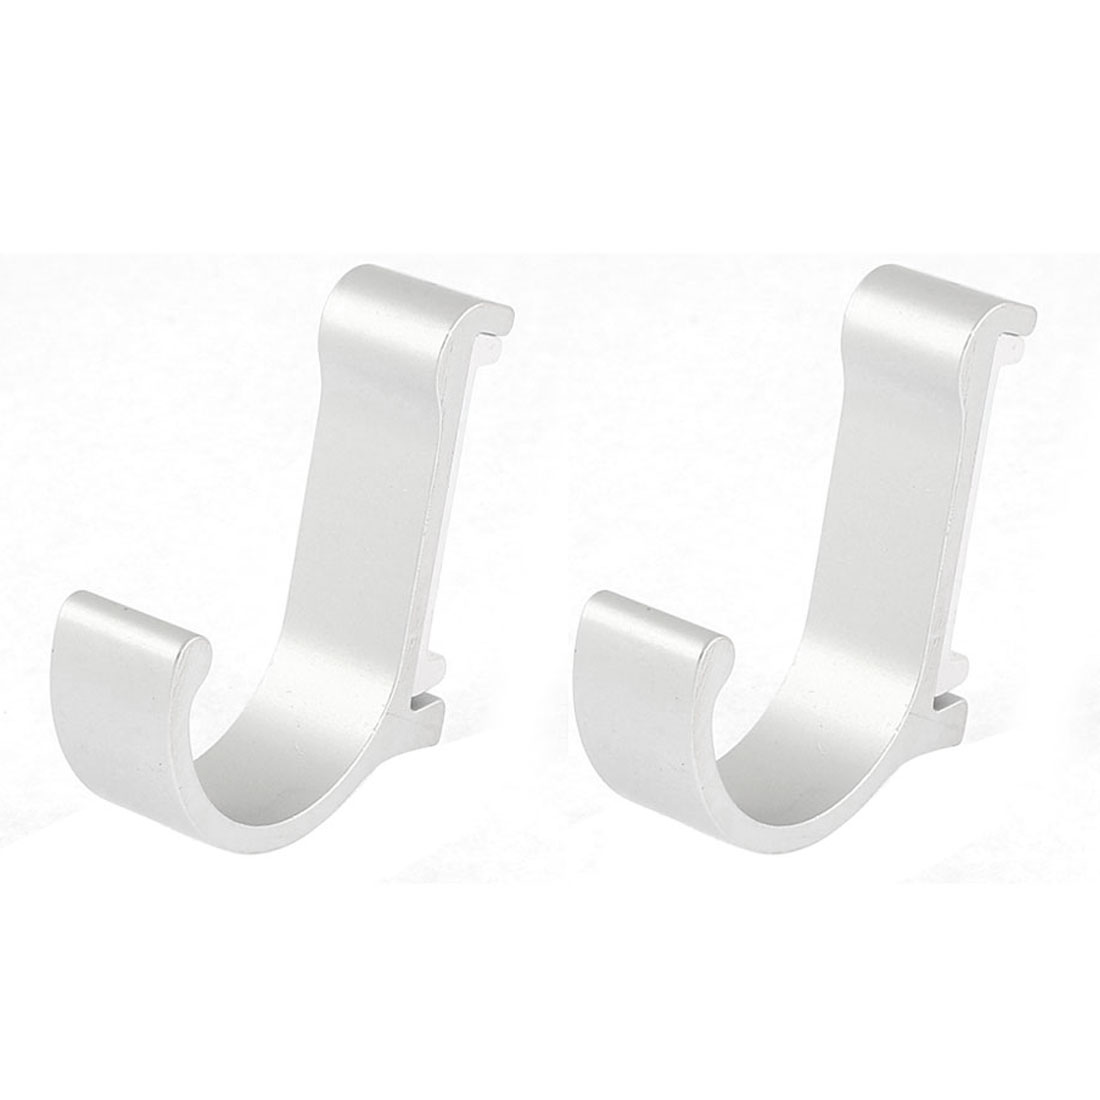 Bathroom Bedroom Wall Mounted Clothes Coat Bath Towel Hanger Hook Silver Tone 2pcs